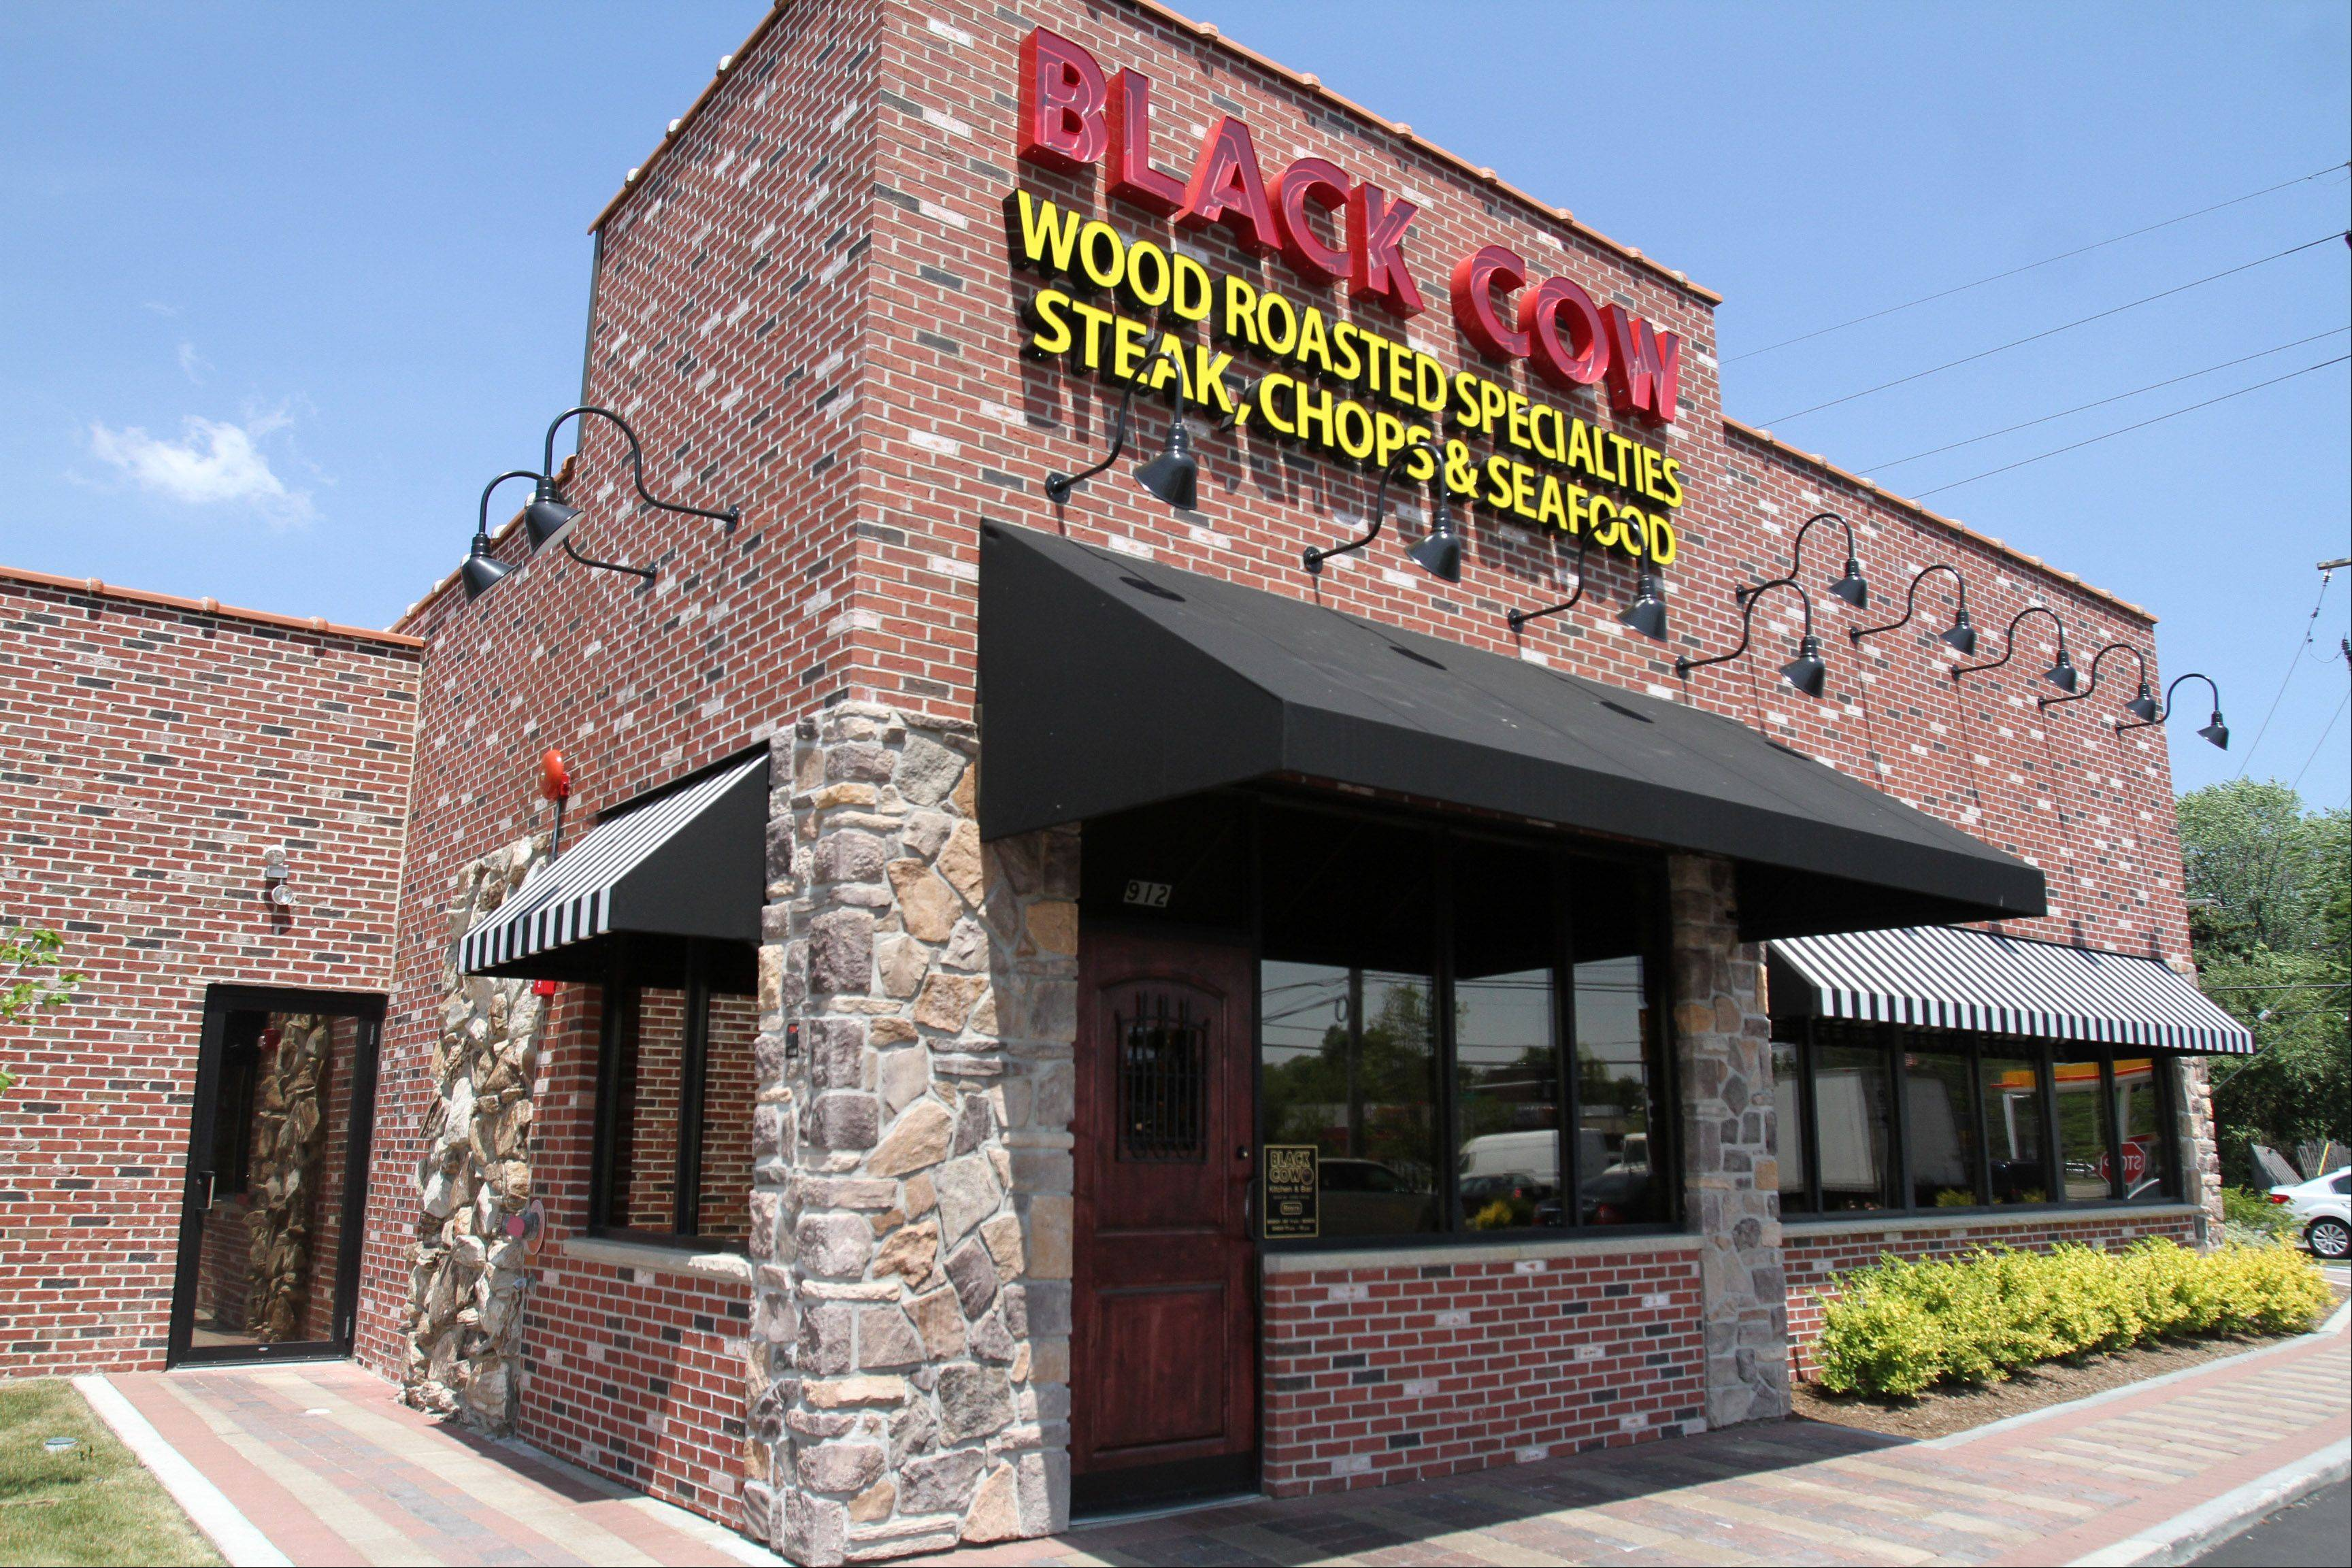 Black Cow Kitchen & Bar in Mount Prospect serves up a selection of steaks, roasted chicken, fresh fish, pasta and burgers.